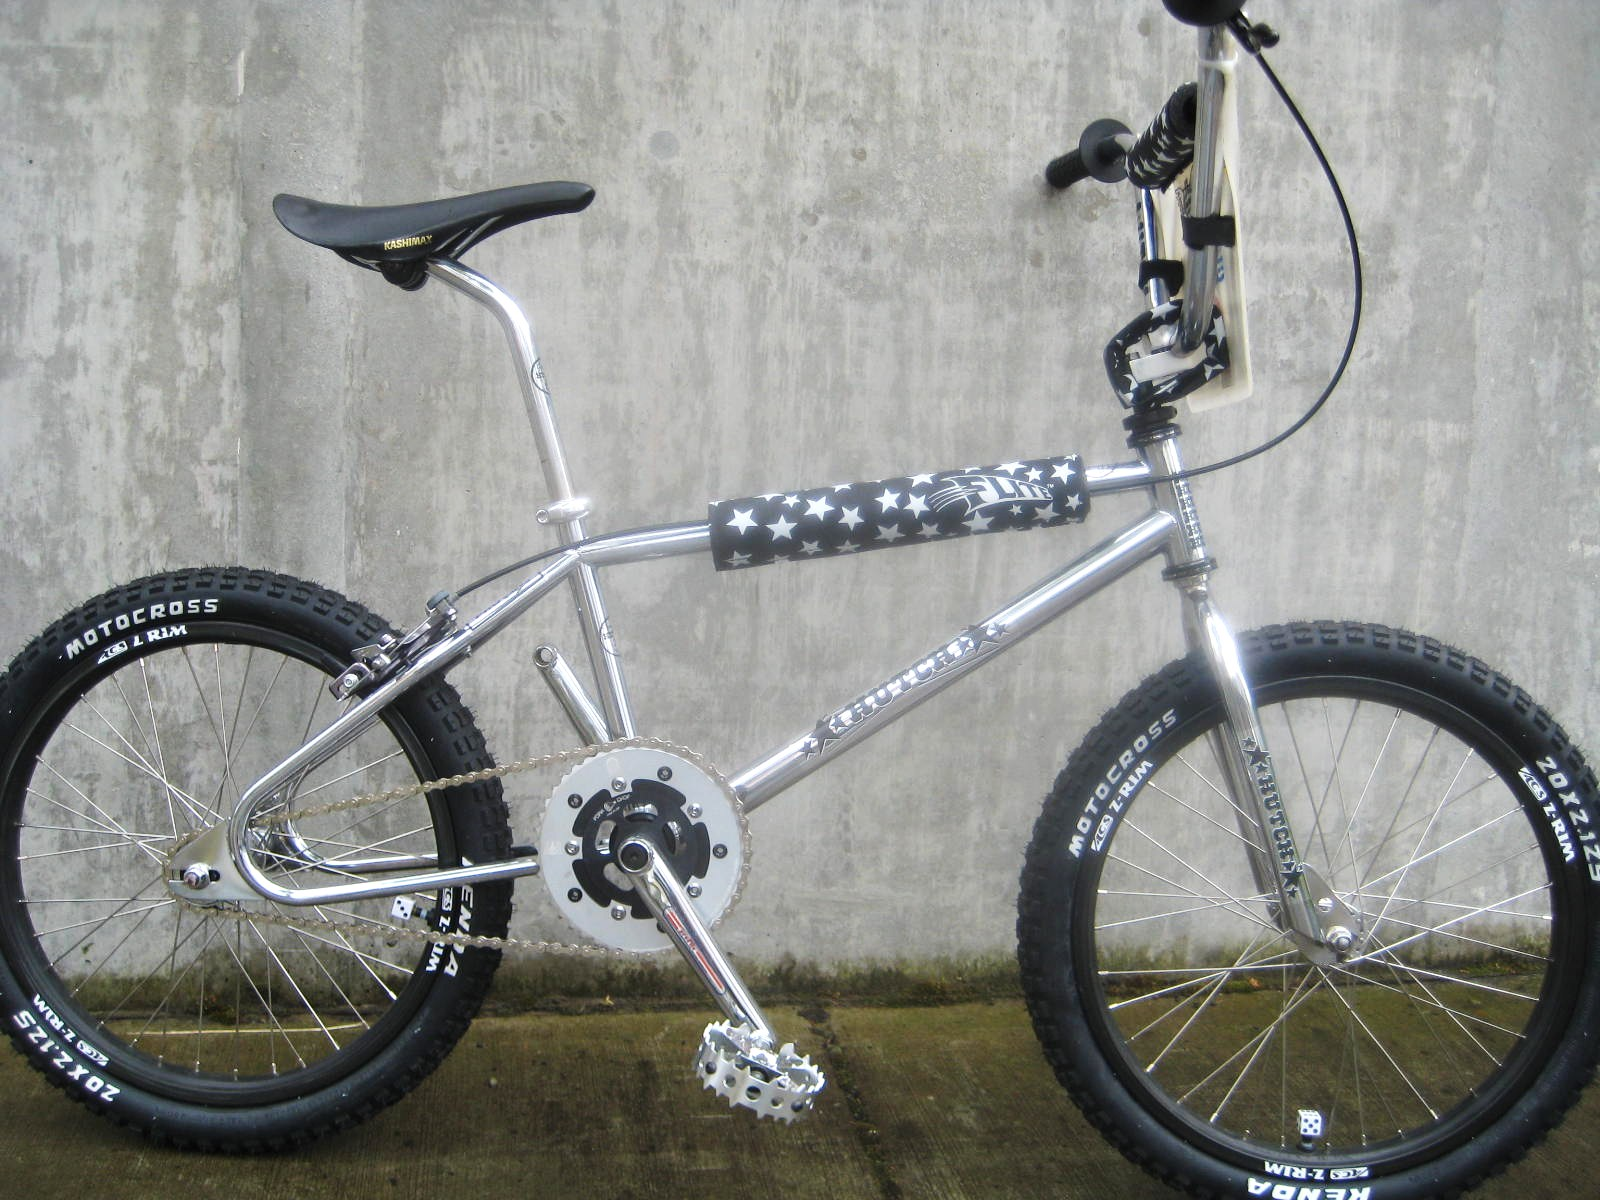 Hutch Bikes For Sale: Old School 1983 Hutch BMX Bike